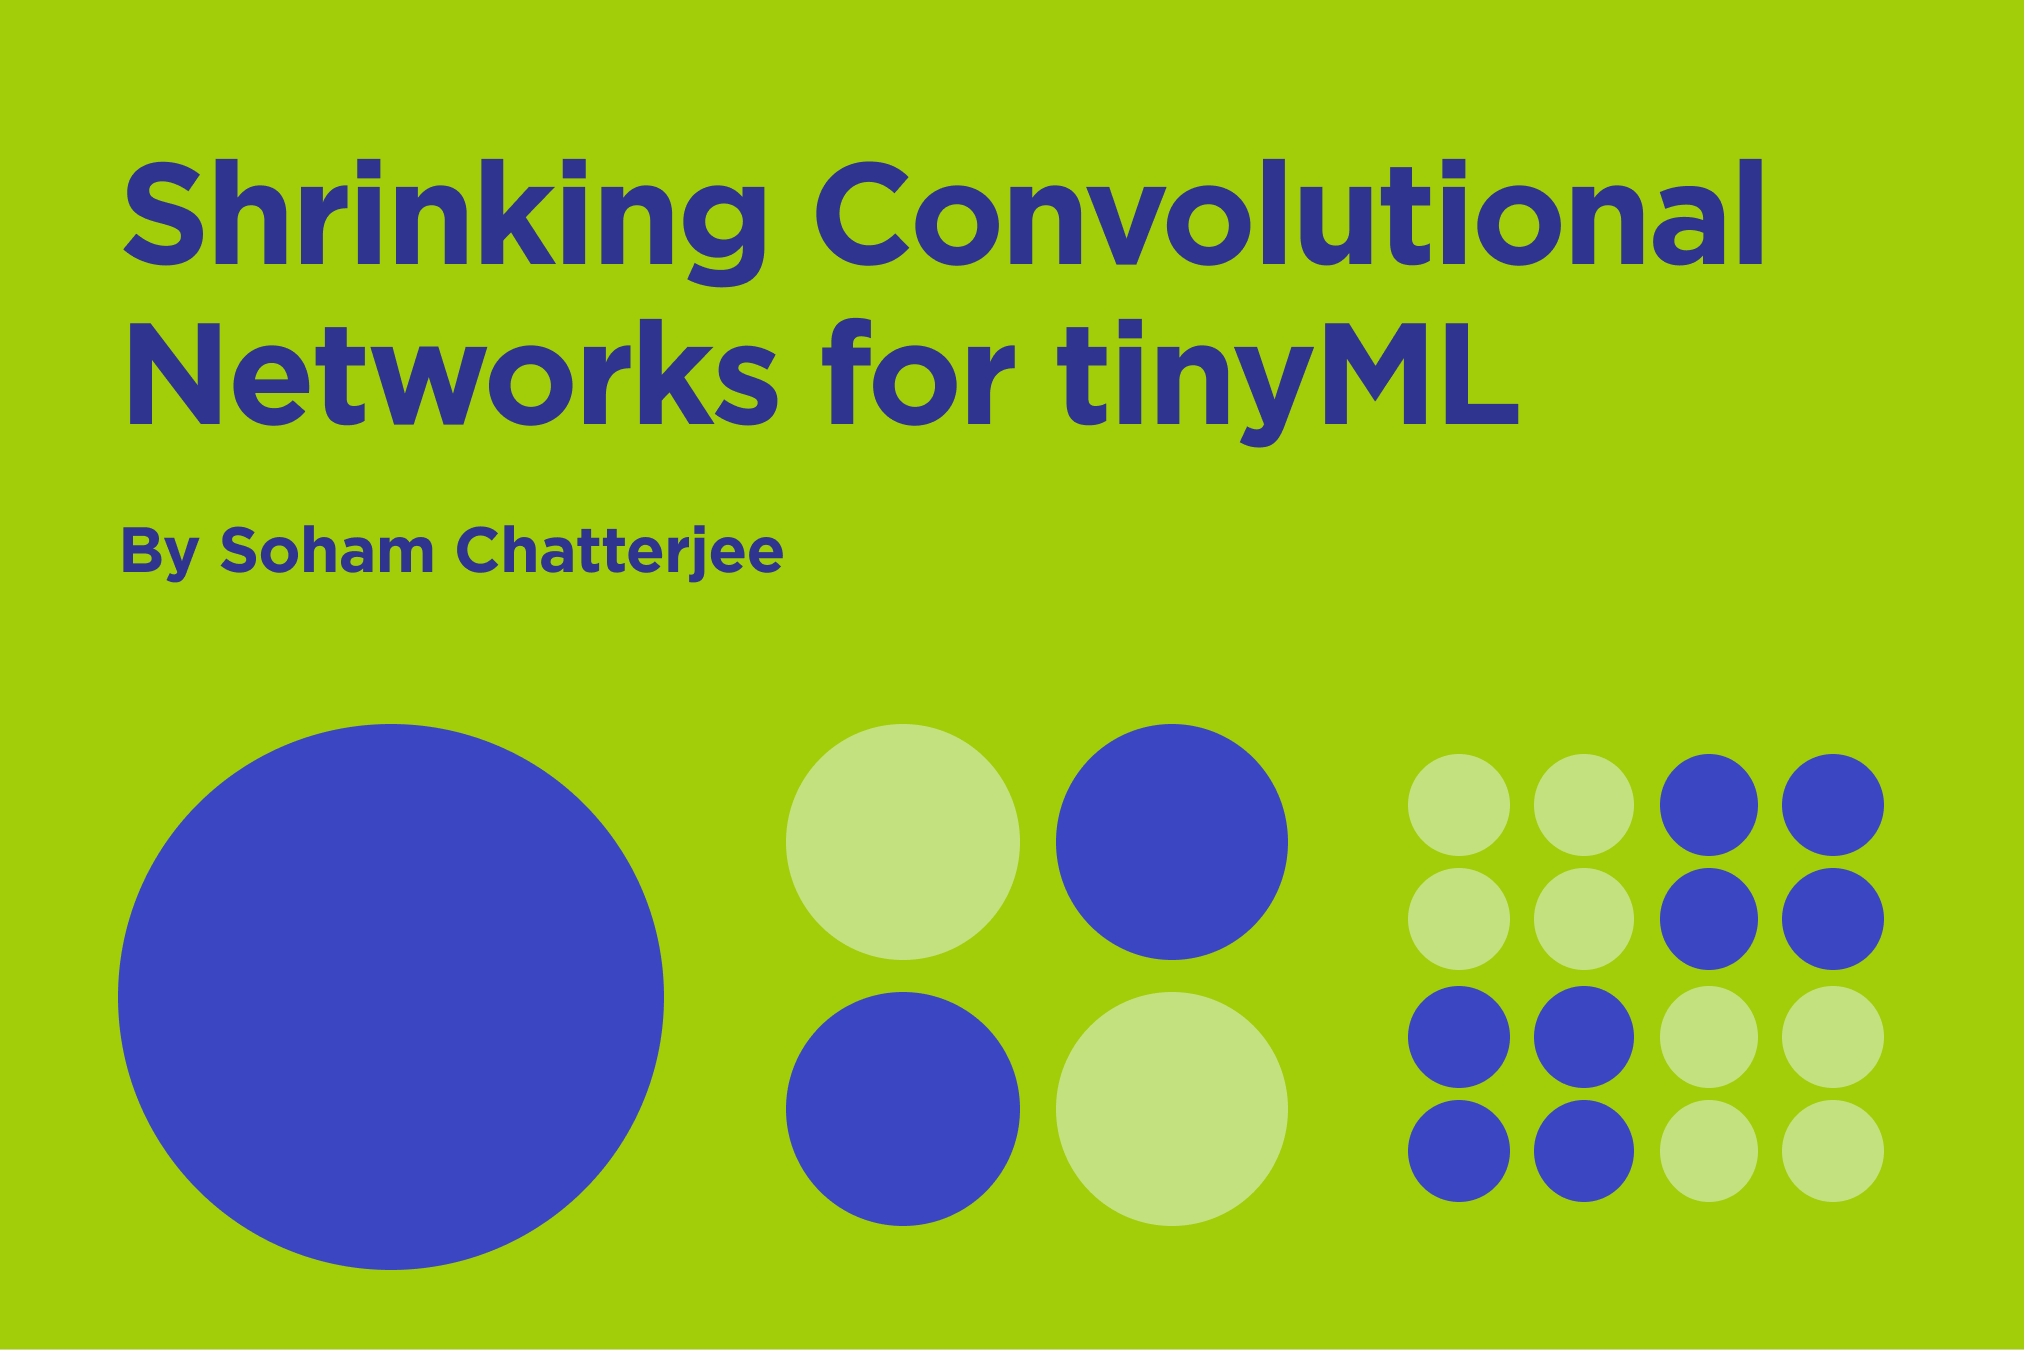 """A few days ago, Pete Warden, whose work inspired me to get into tinyML, released a blog titled """"One weird trick to shrink convolutional networks for"""